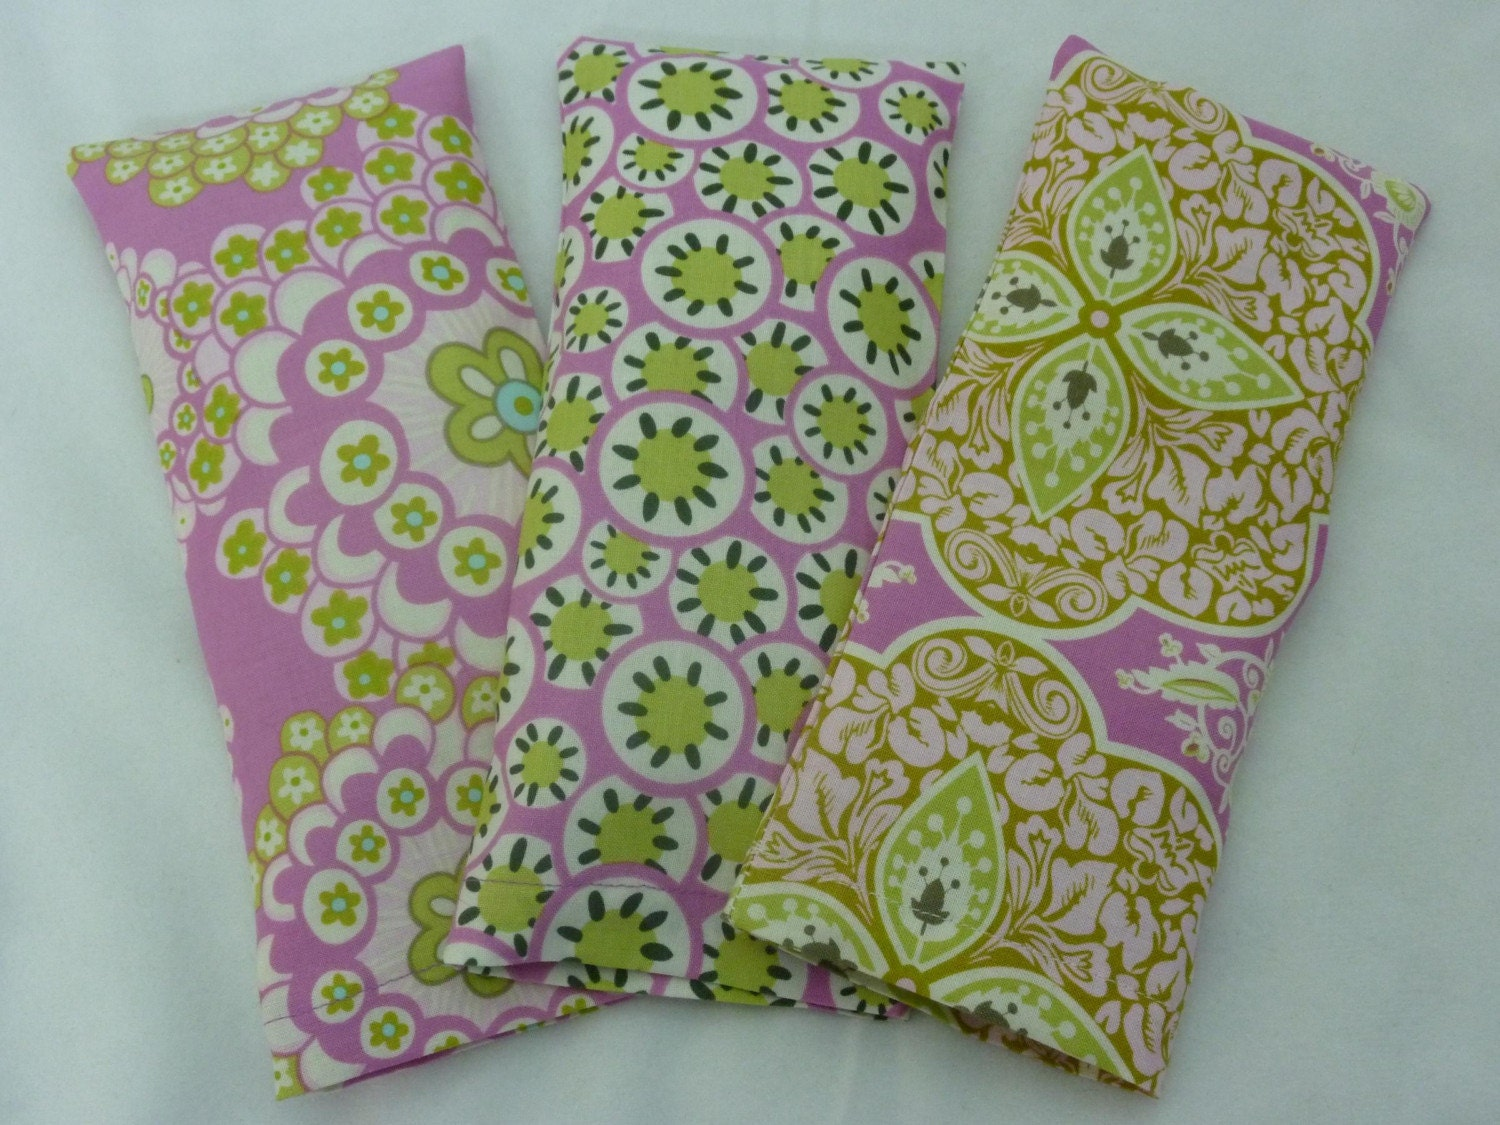 Soothing Aromatherapy Eye Pillow Set of Three with Removable Covers - Choice of Herbs